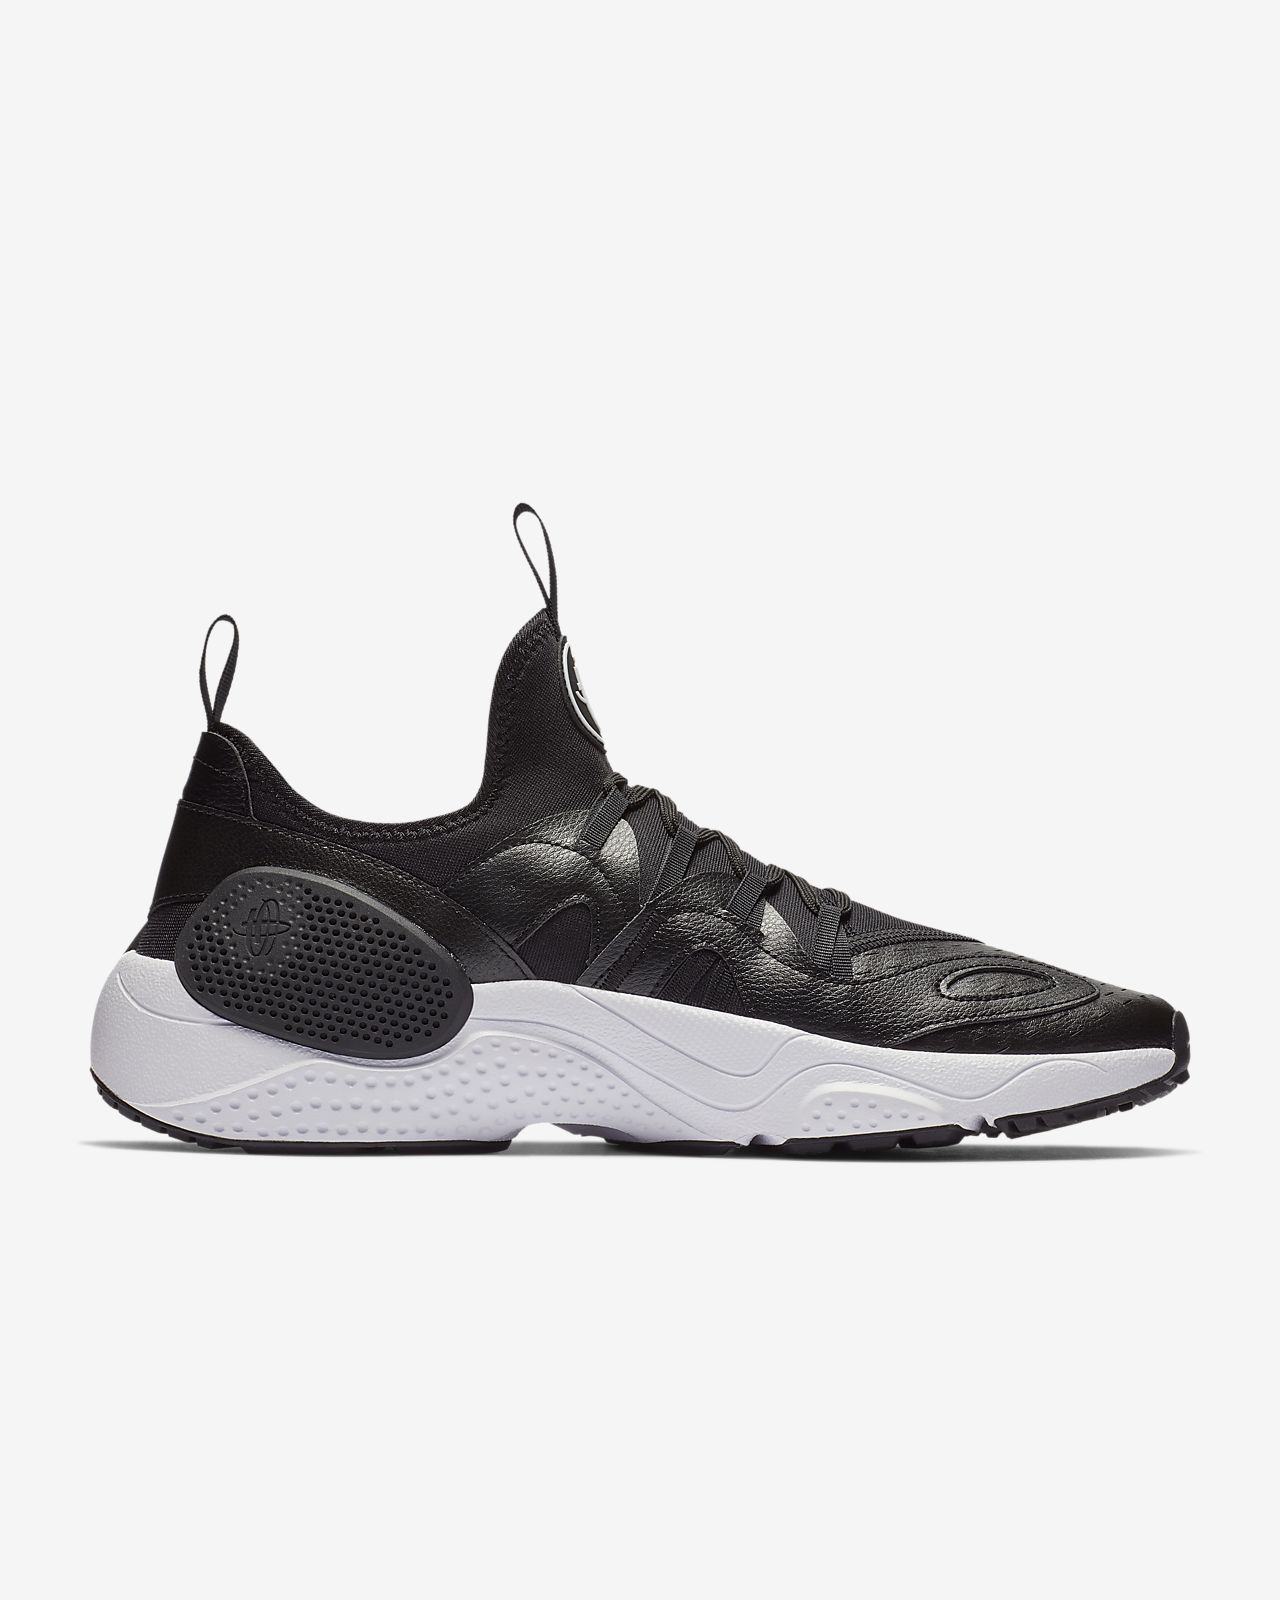 1ac3c00522e Low Resolution Nike Huarache E.D.G.E. Men s Shoe Nike Huarache E.D.G.E.  Men s Shoe